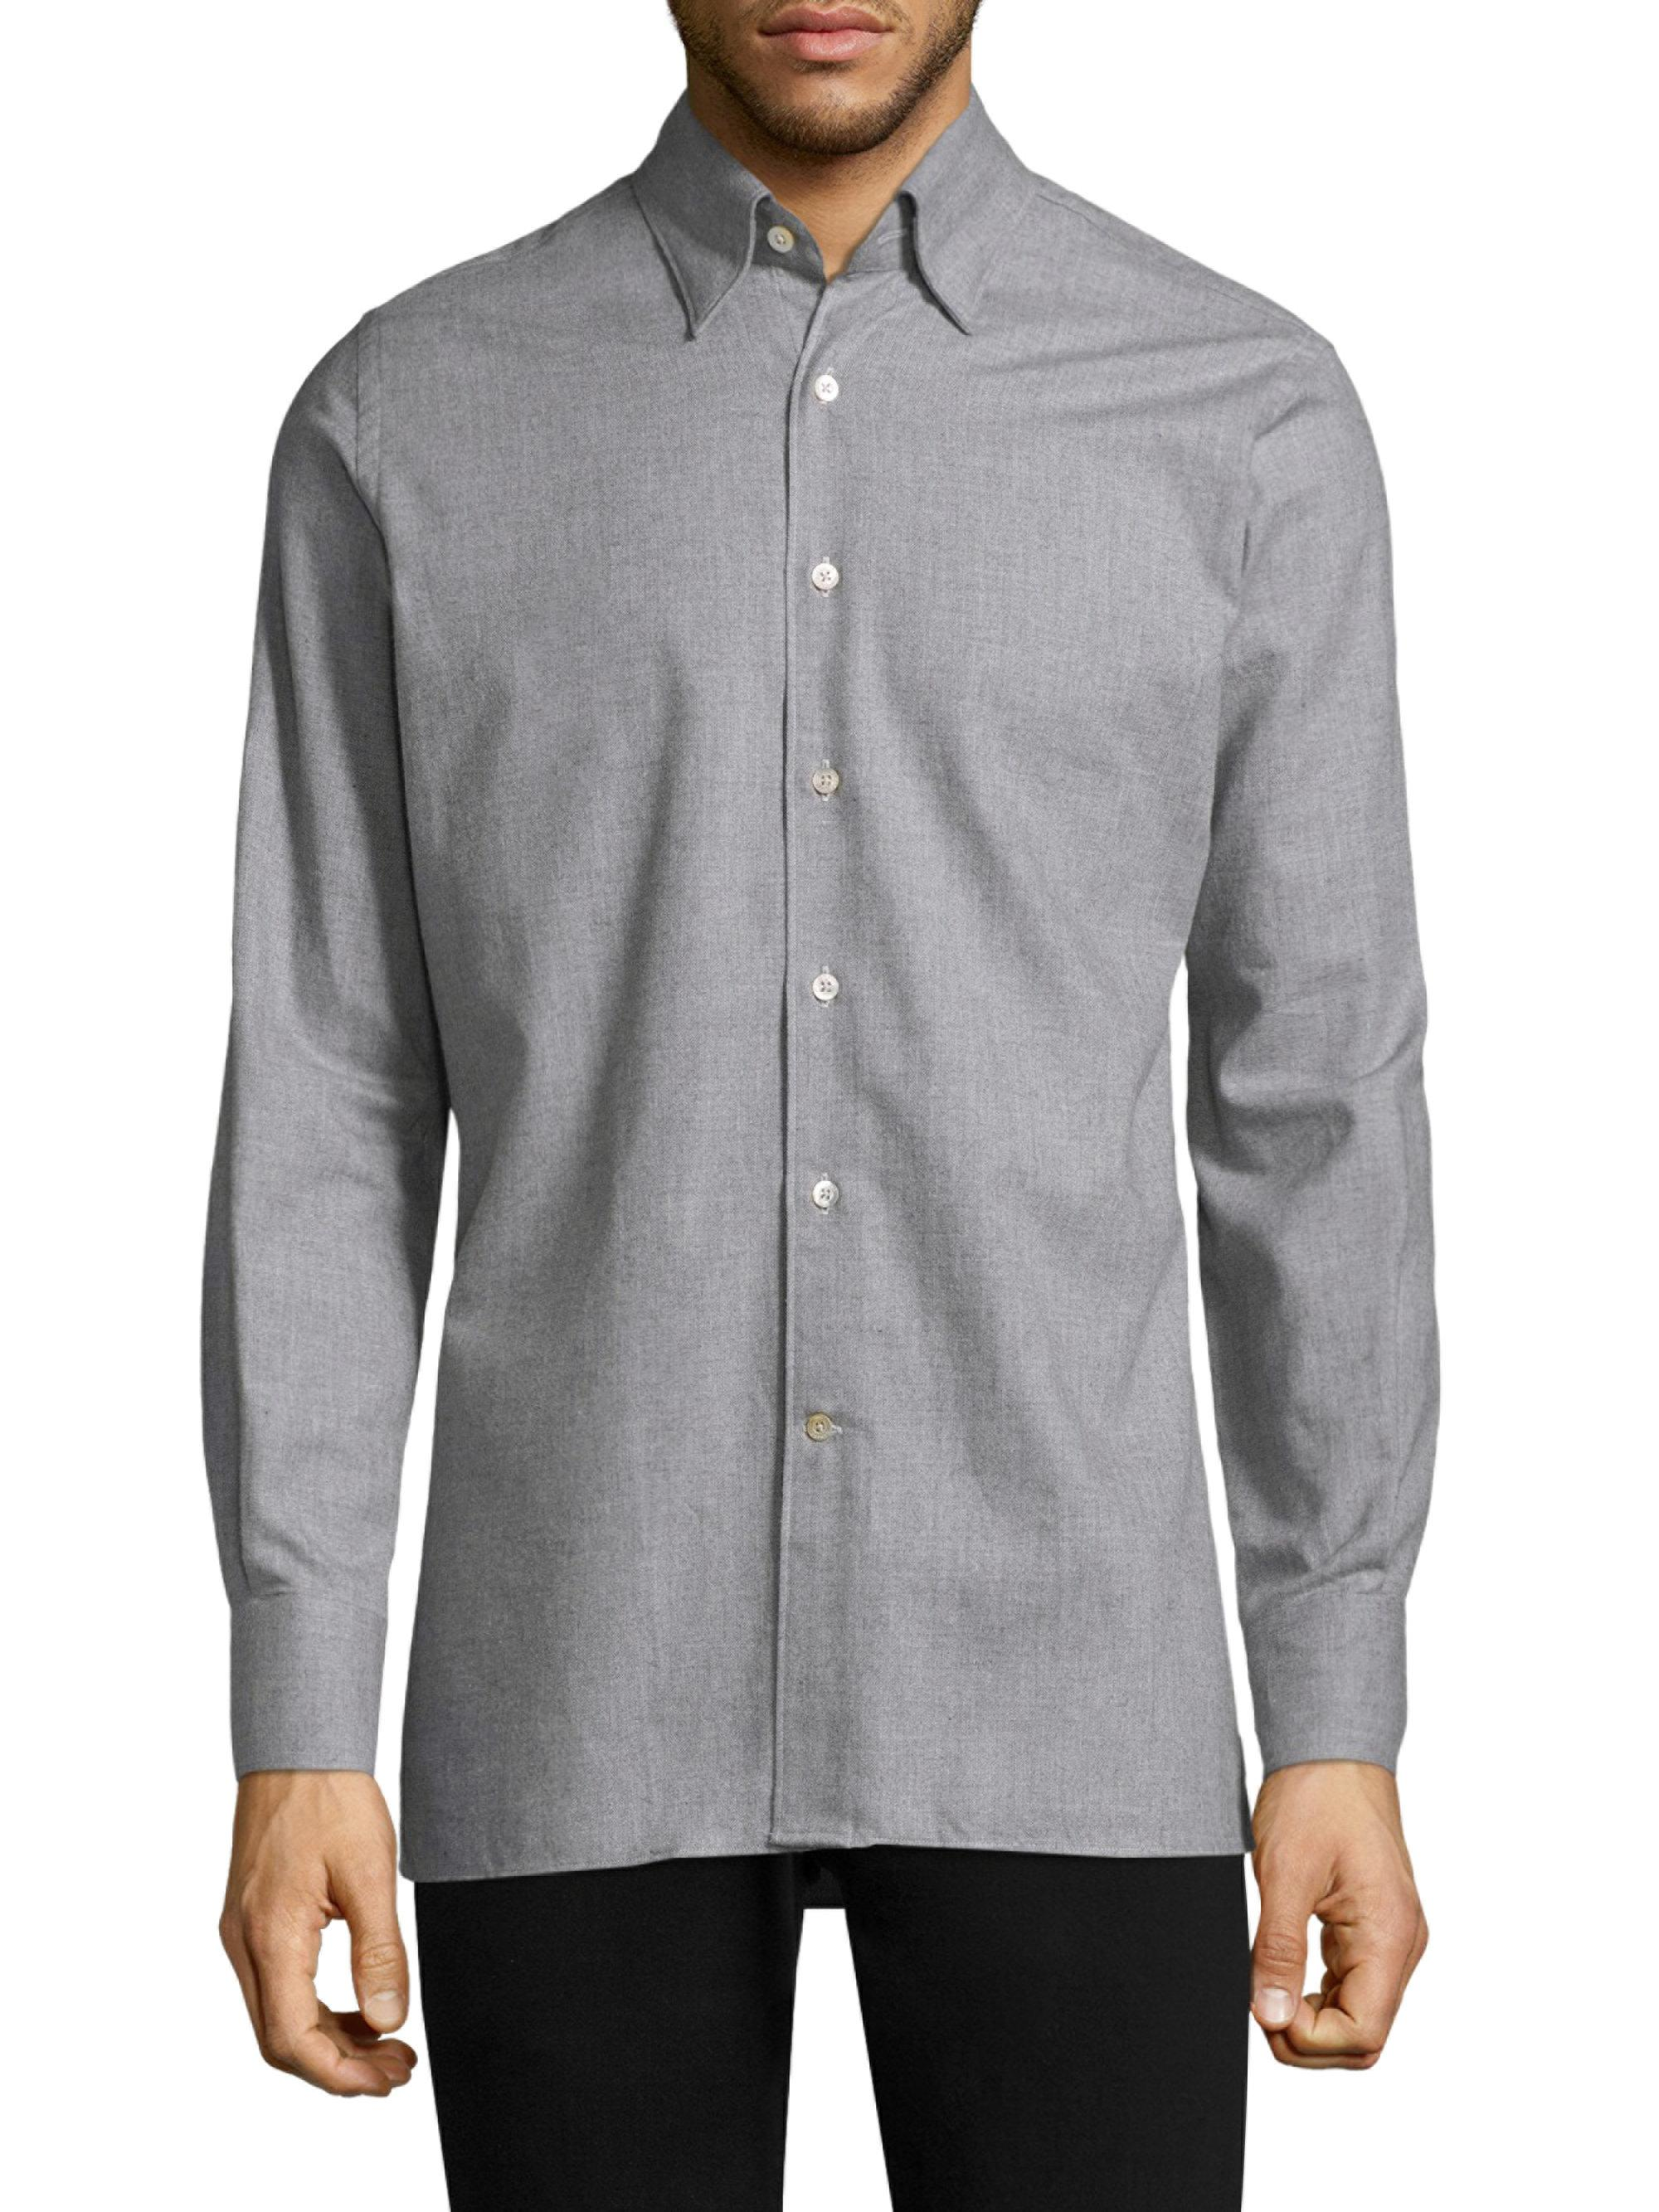 Shop men's casual button-down shirts at Neiman Marcus. Get free shipping on various brands & styles.